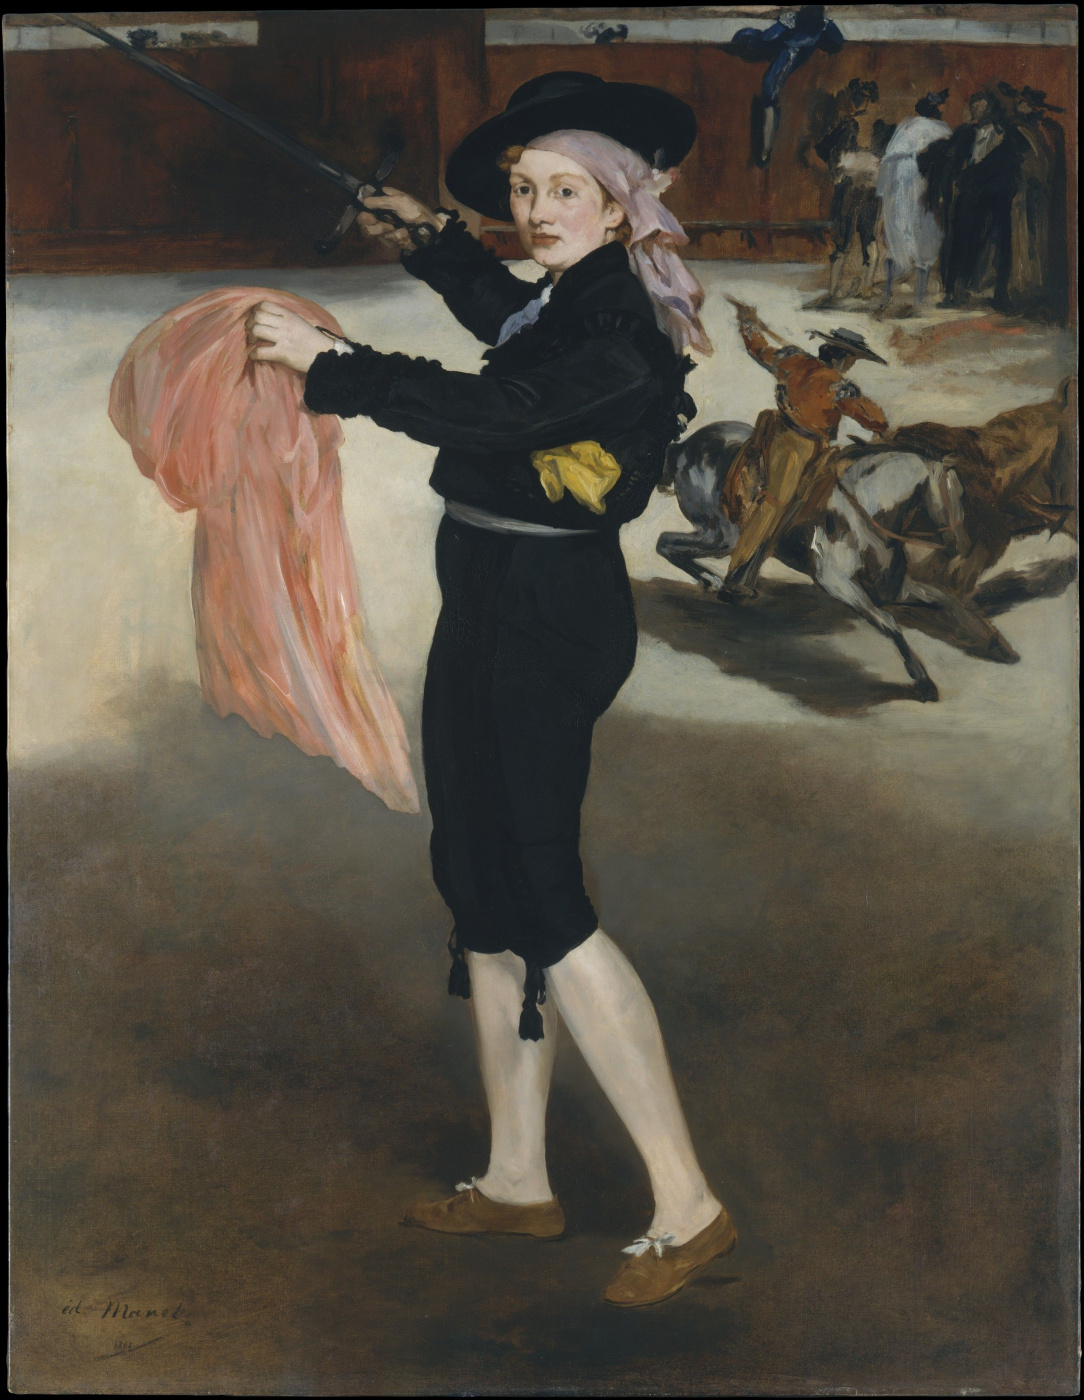 Edouard Manet. Portrait of Mademoiselle Quiz dressed as a toreador